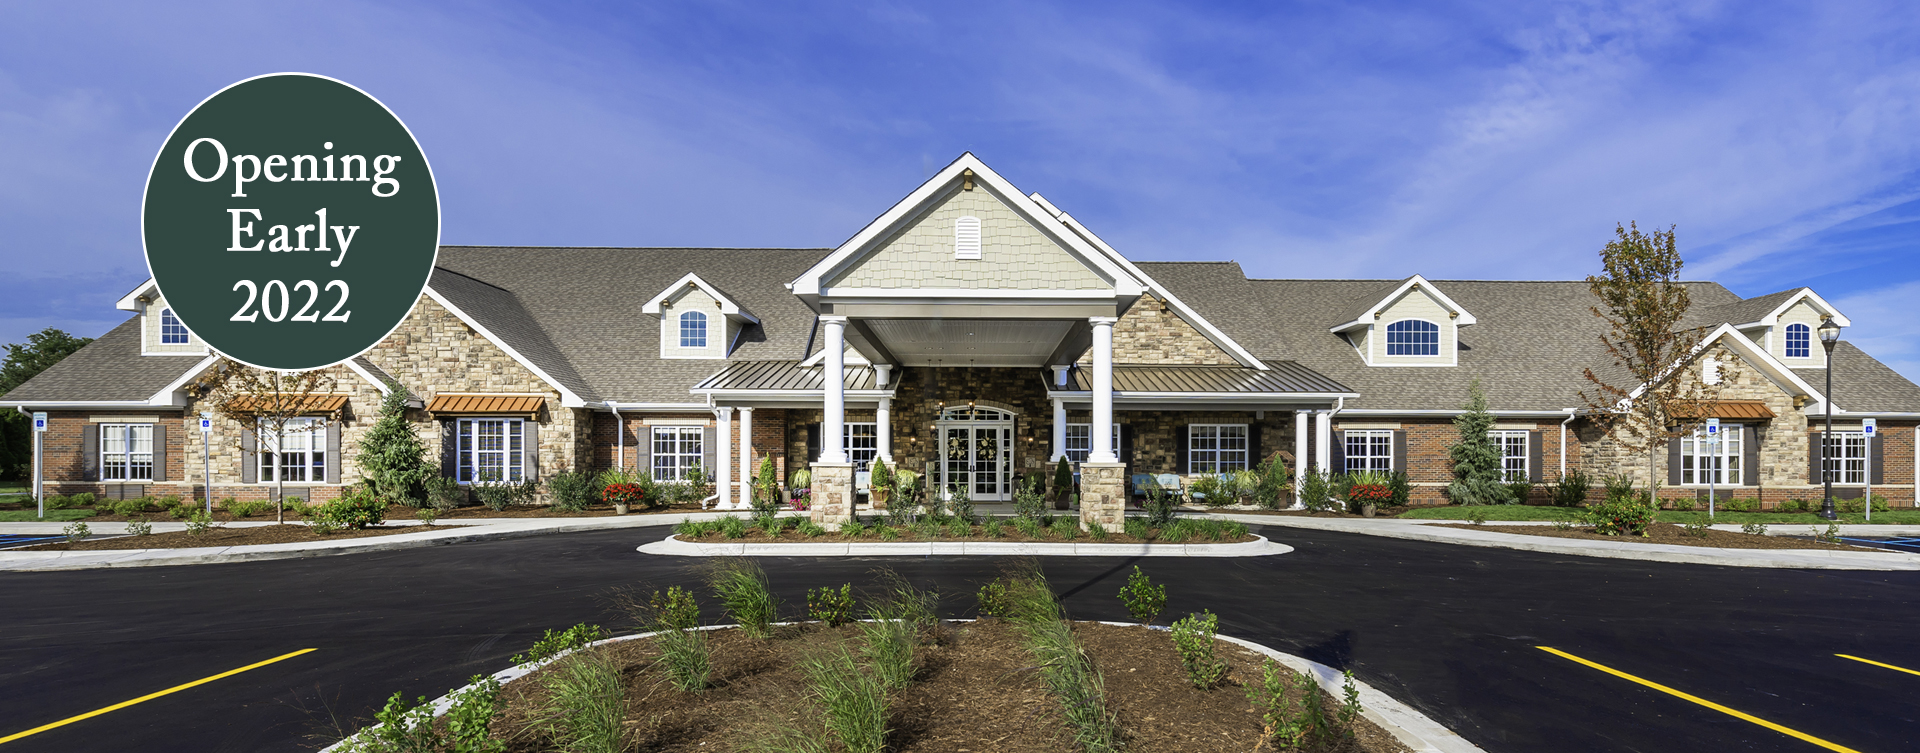 Stop by and visit us at  Bickford of Chesapeake